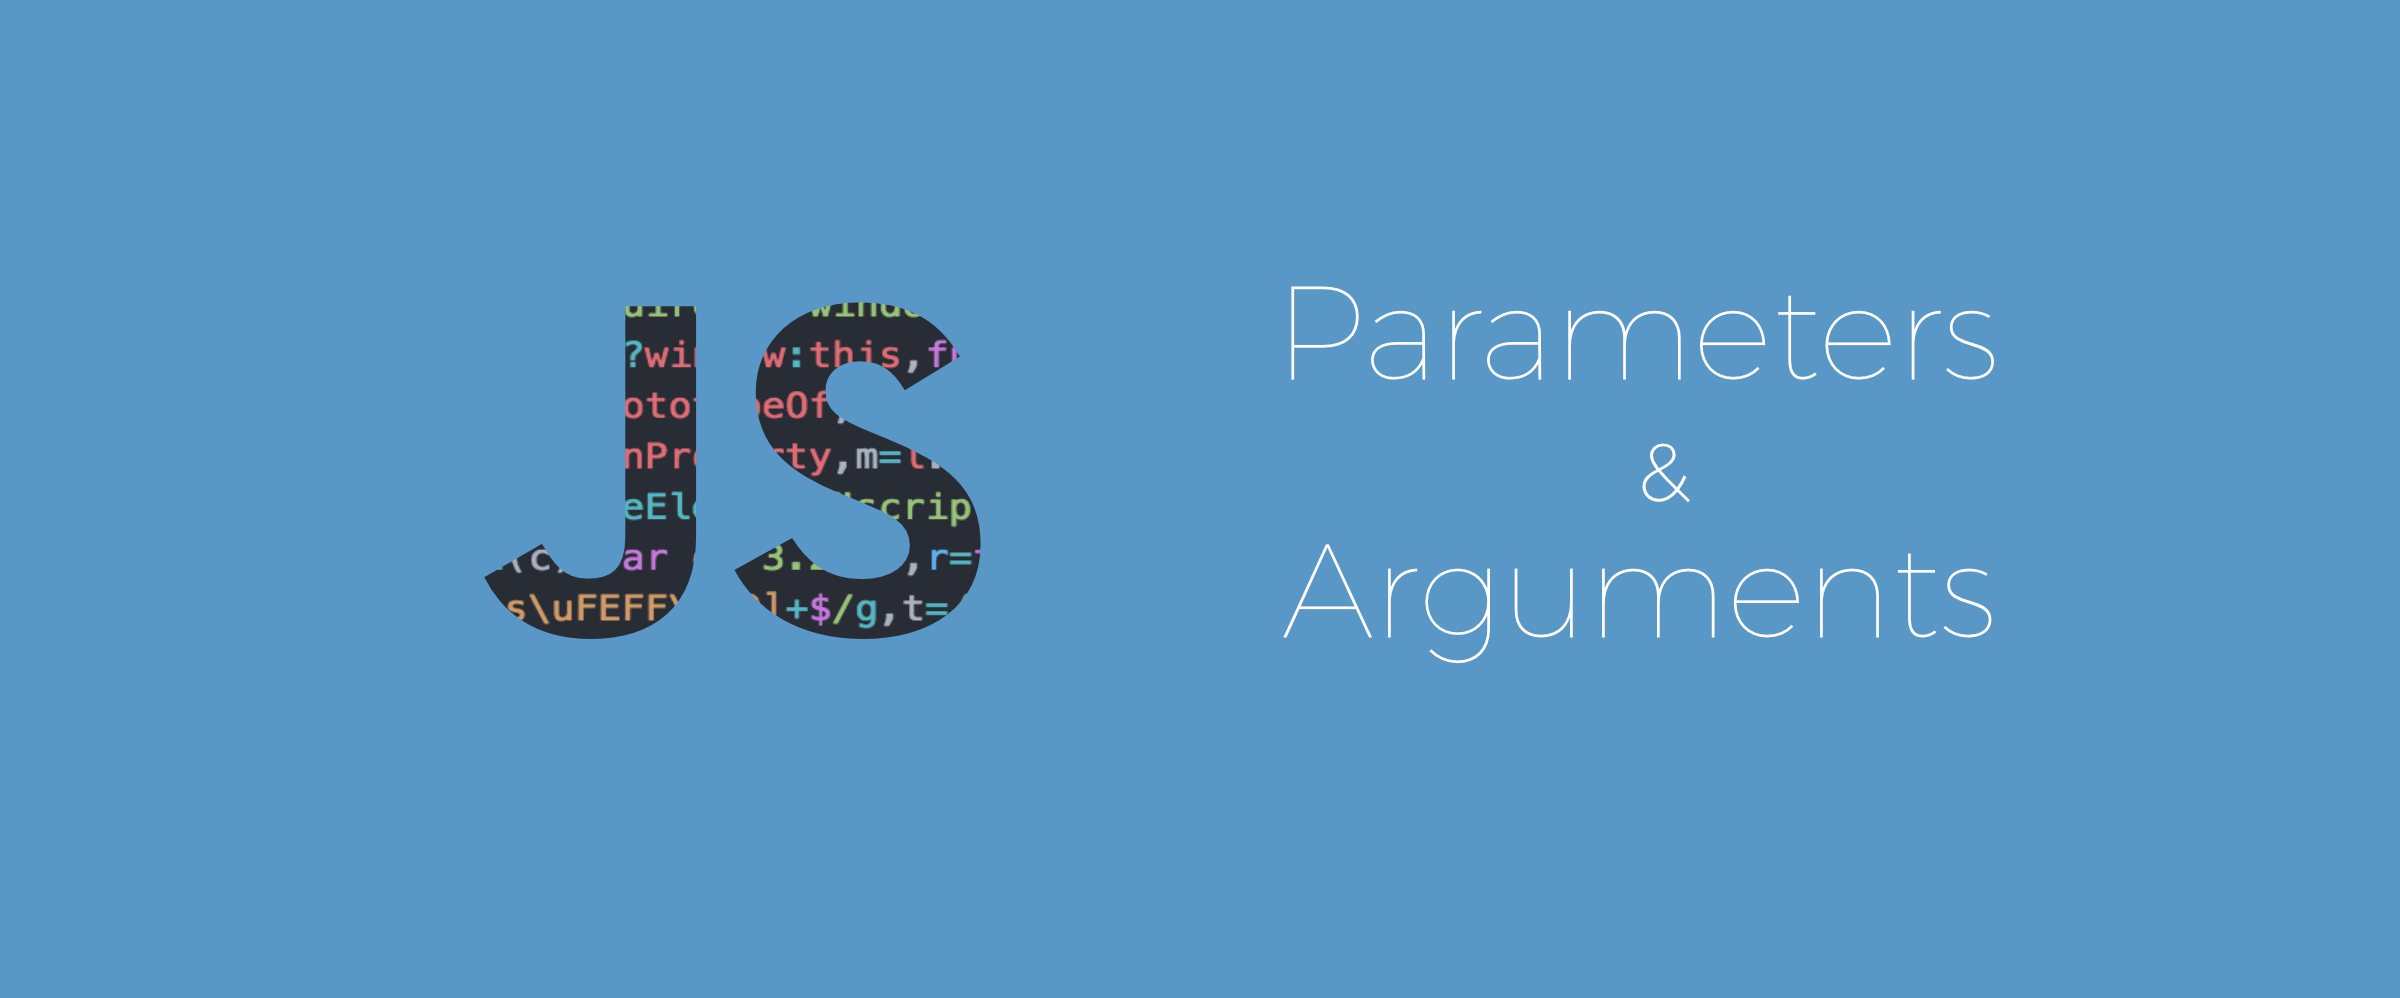 Arguments and Parameters in Javascript